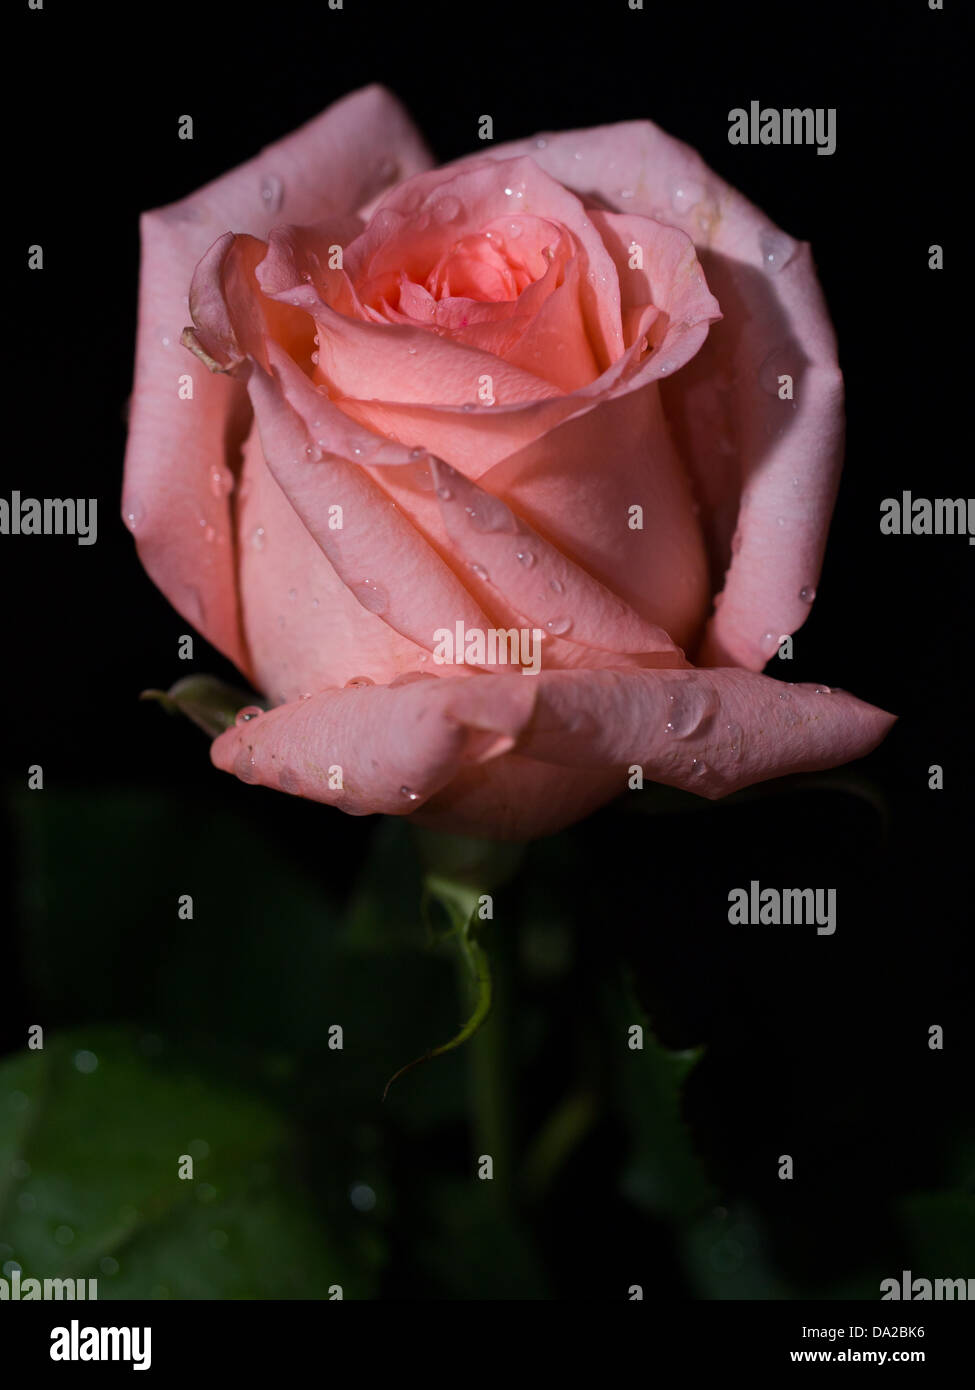 single pink rose with stem and green rose leaves dark background and